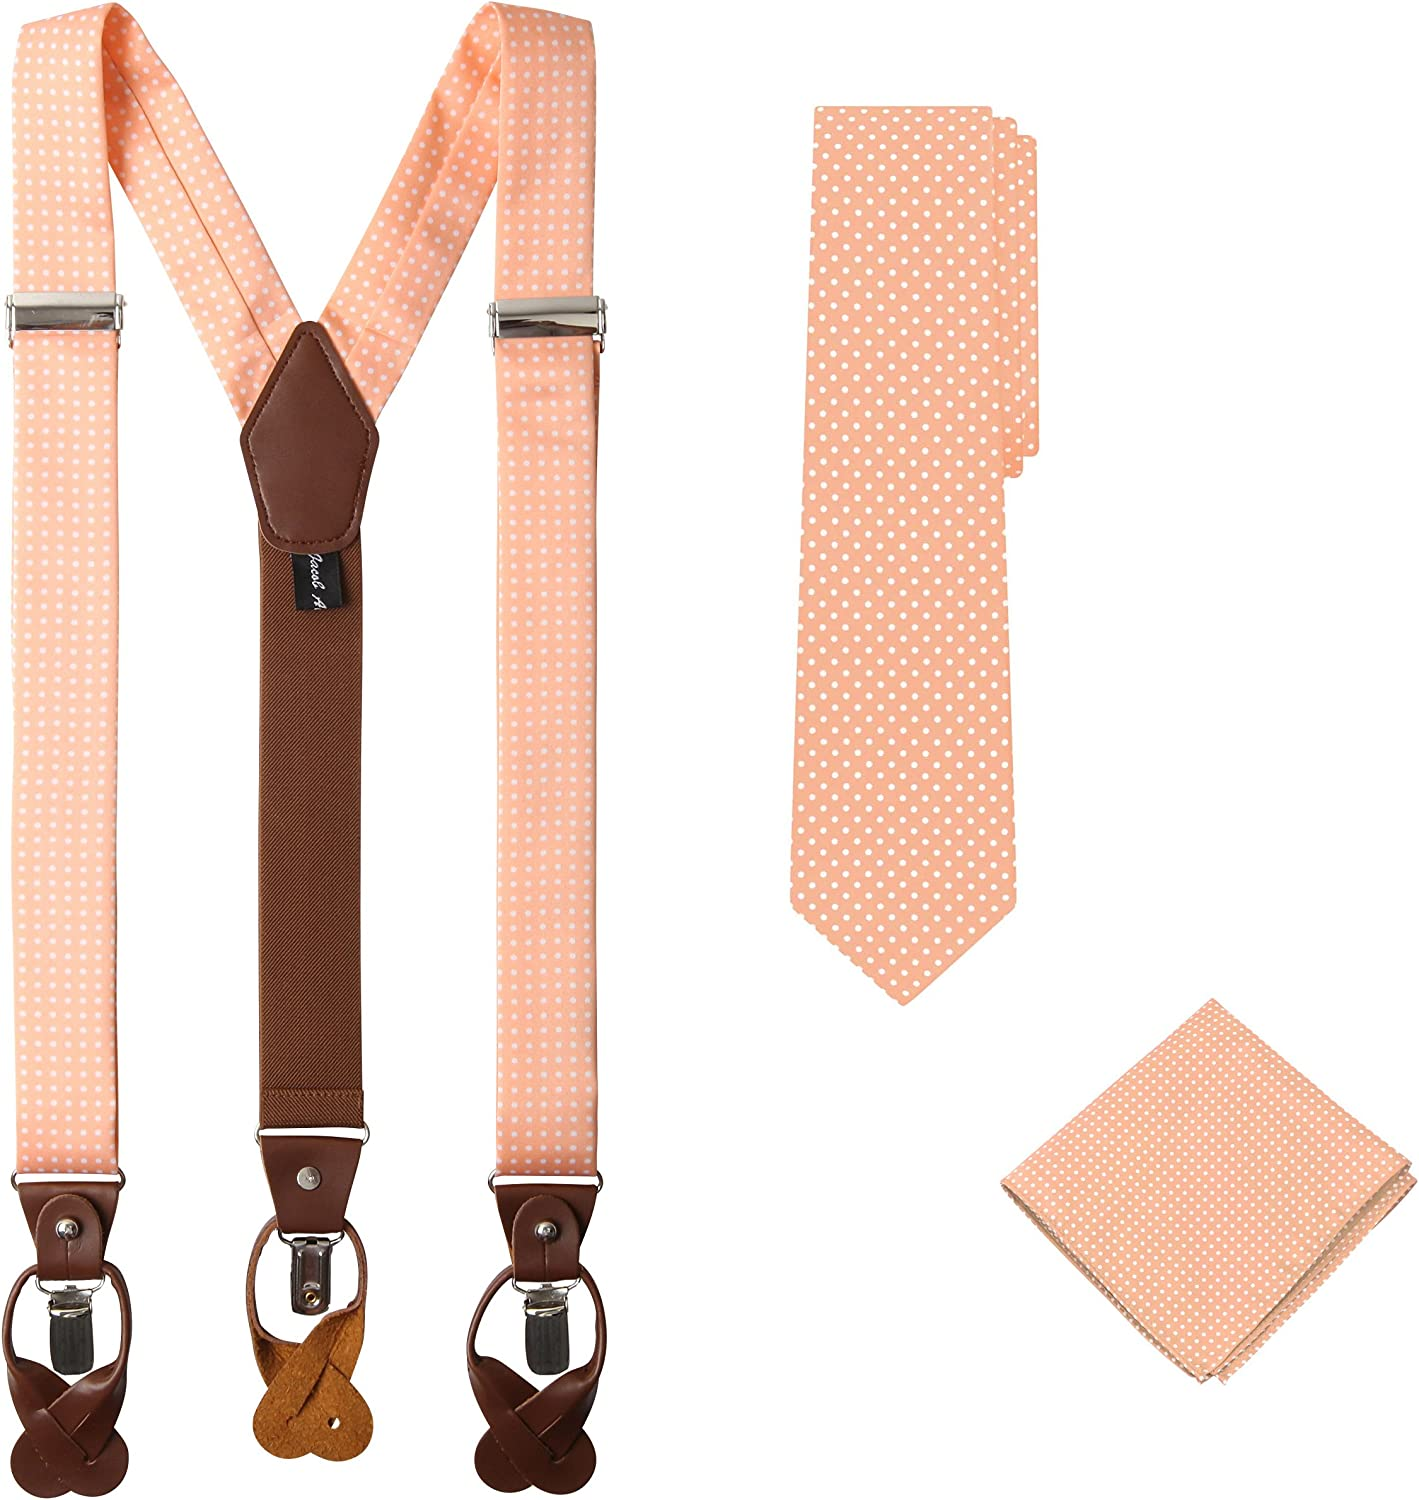 Jacob Alexander Matching Polka Ranking TOP5 famous Dot Suspenders Handkerchief and T